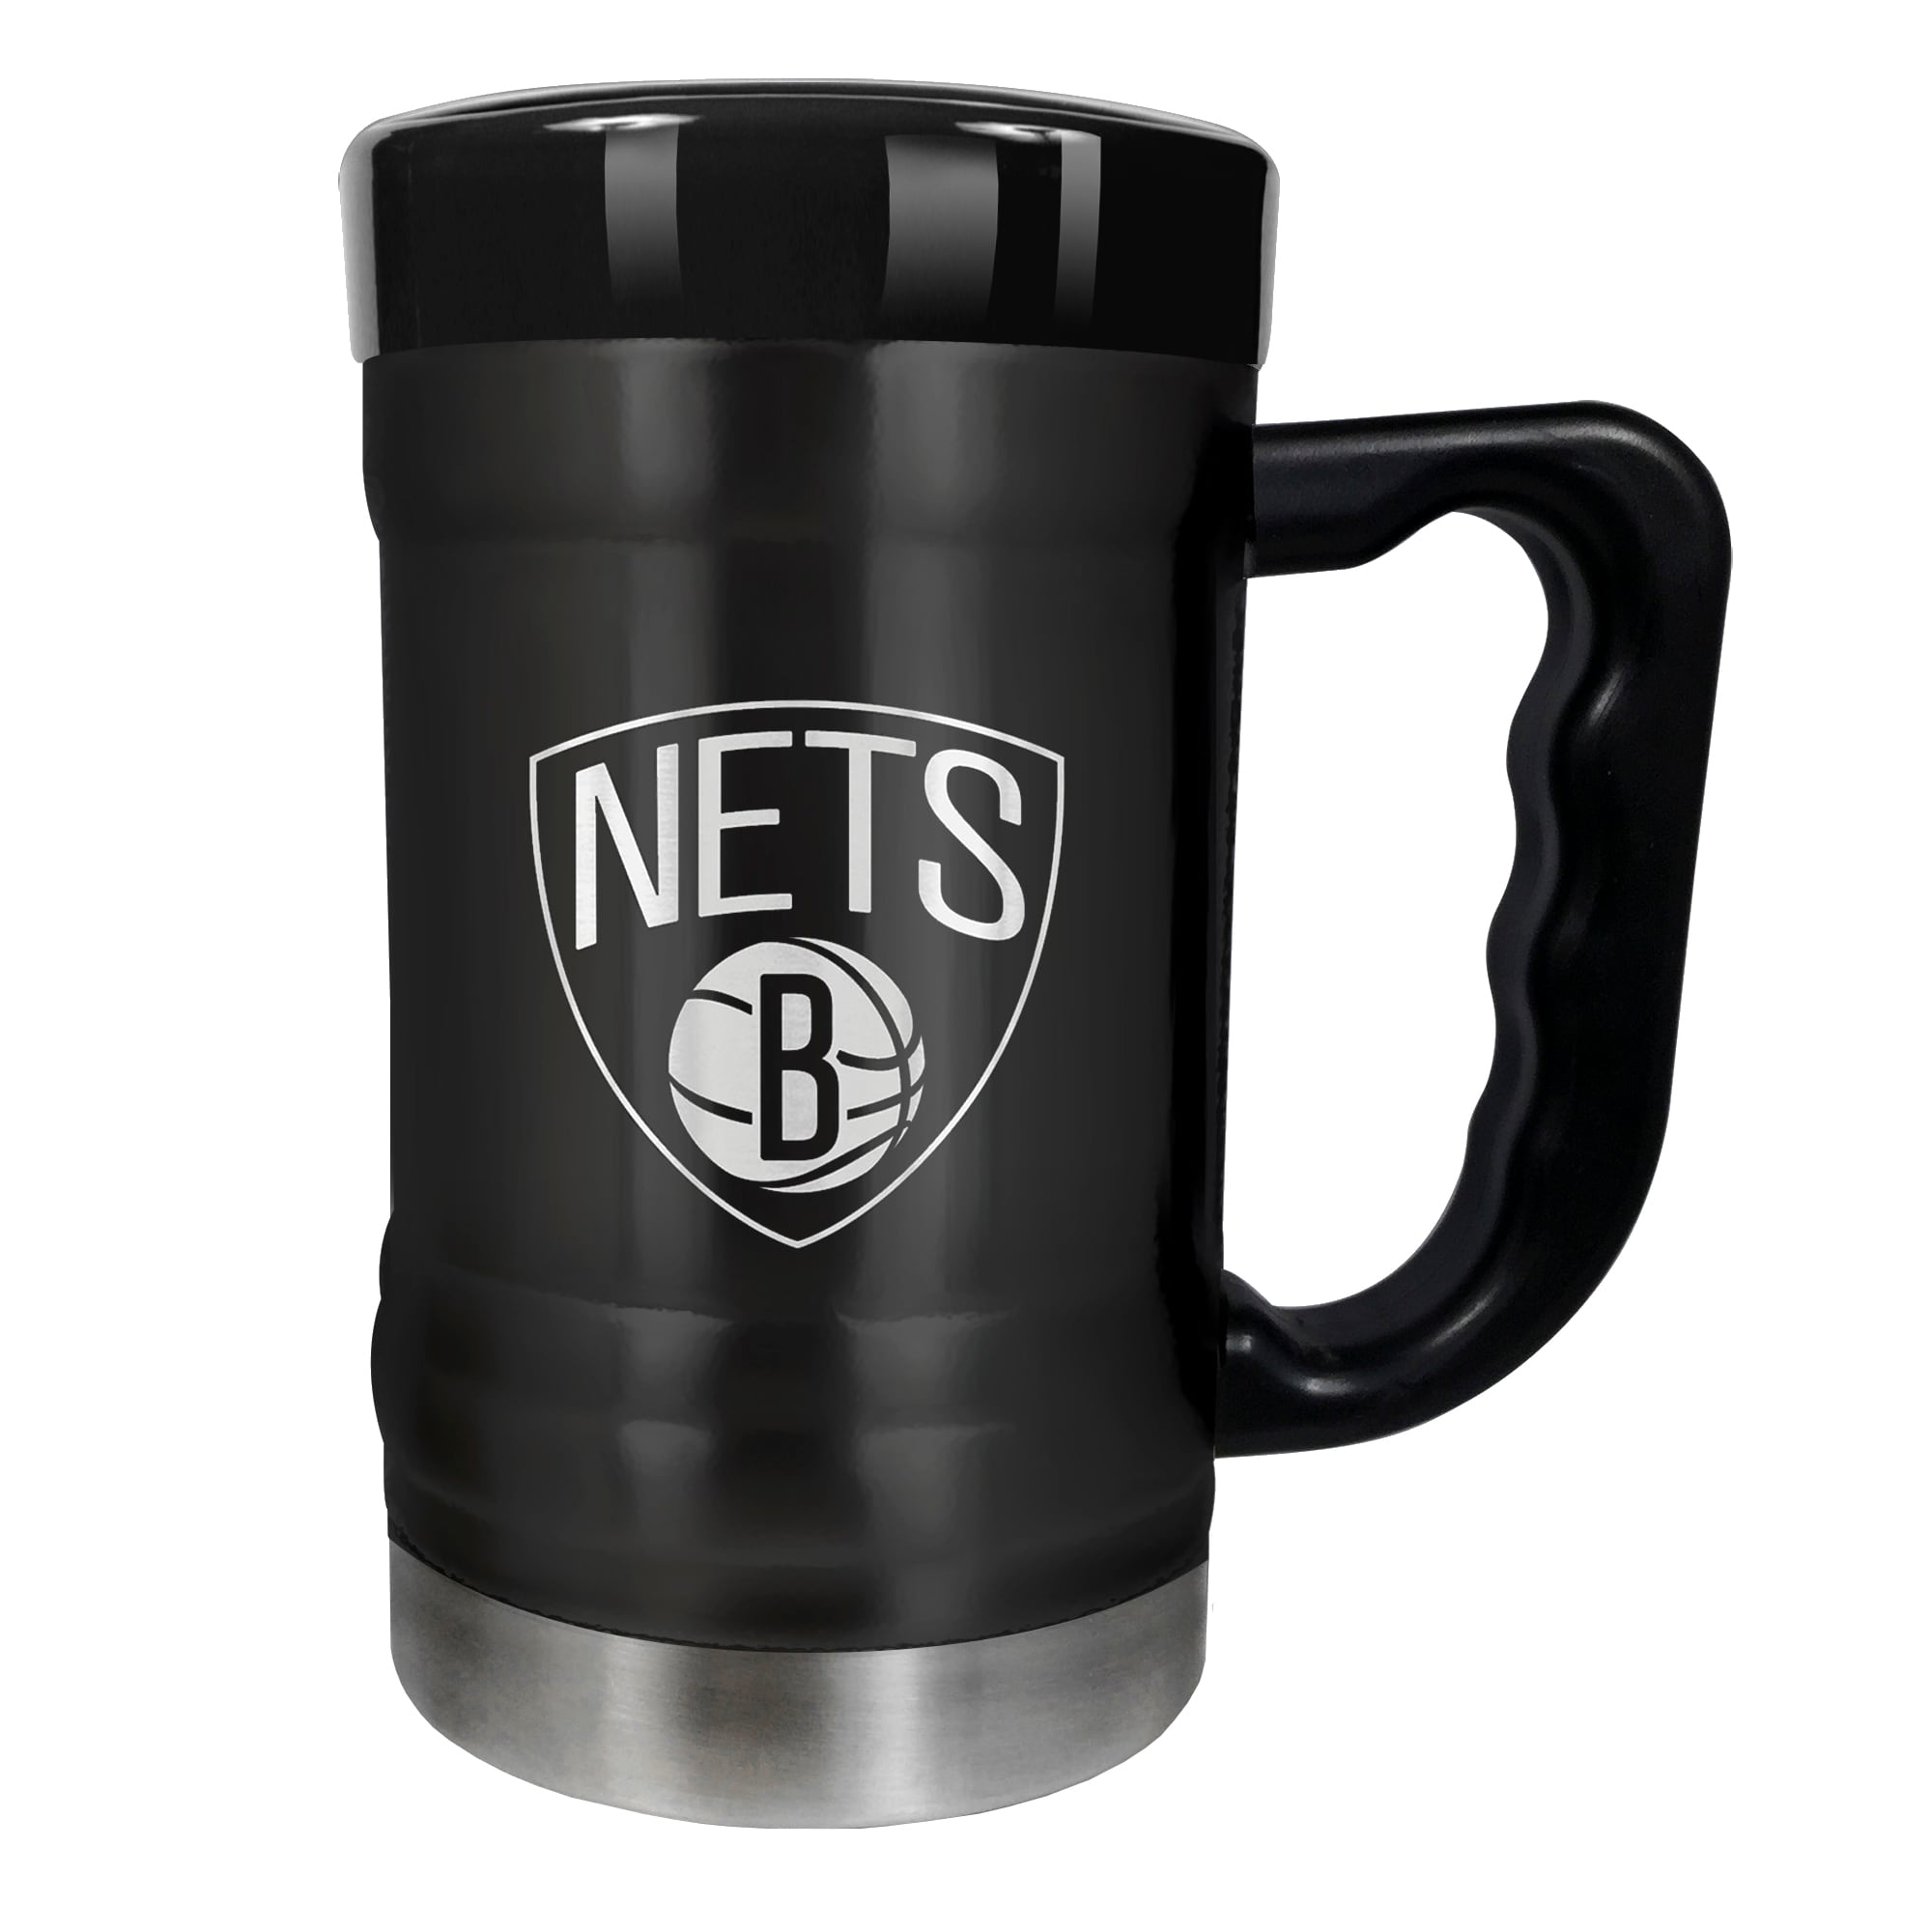 Brooklyn Nets 15oz. Stealth Coach Coffee Mug - Black